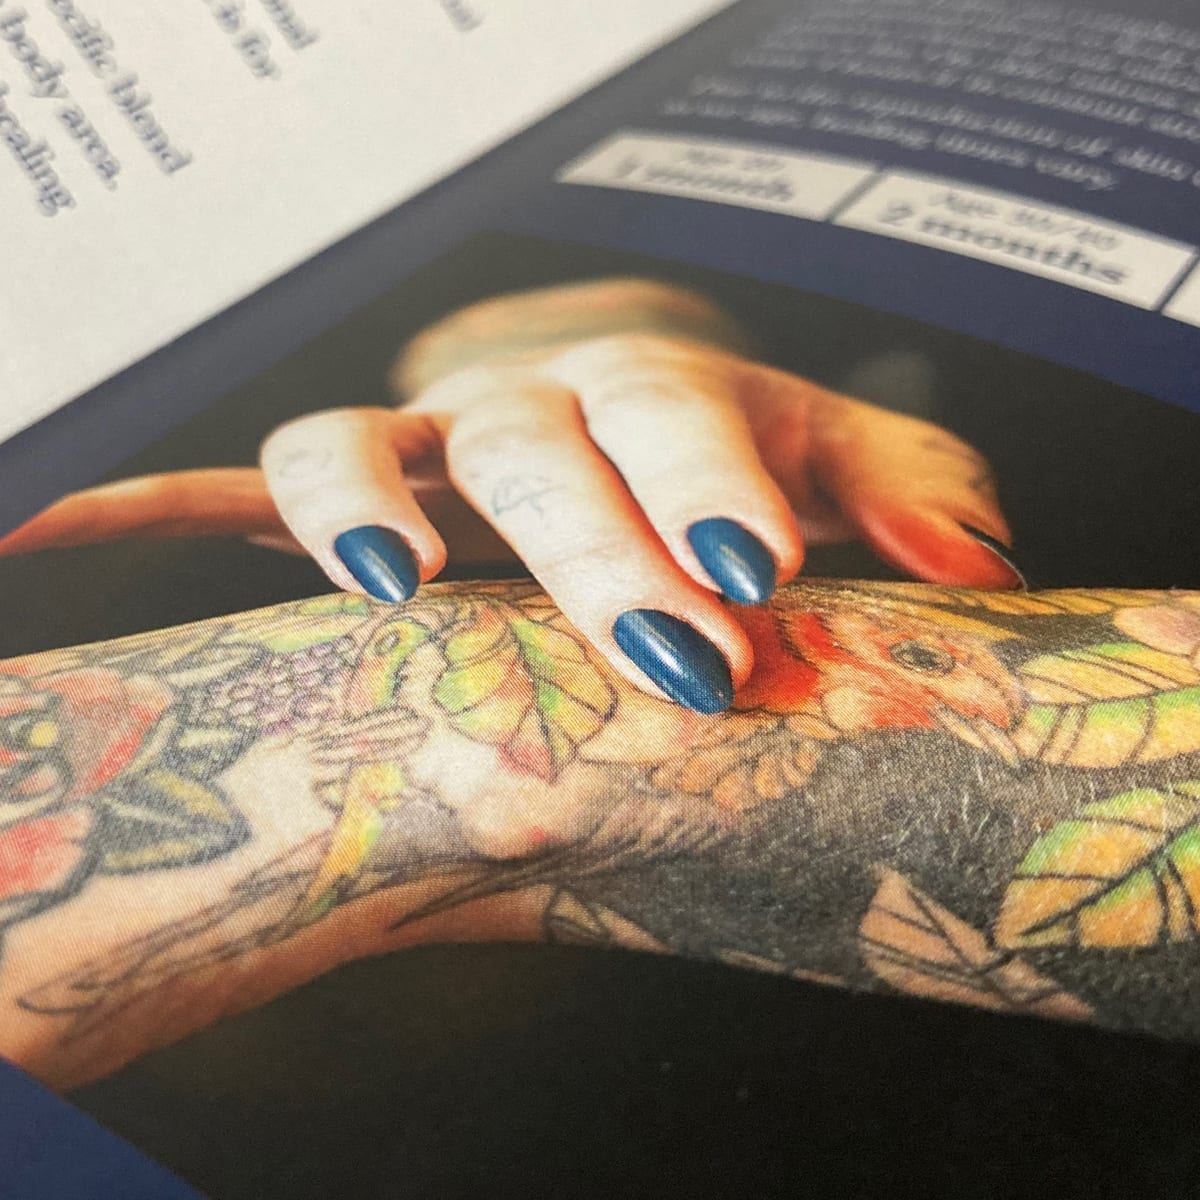 A square crop of a page from a brochure showing a hand massaging balm onto a tattooed arm